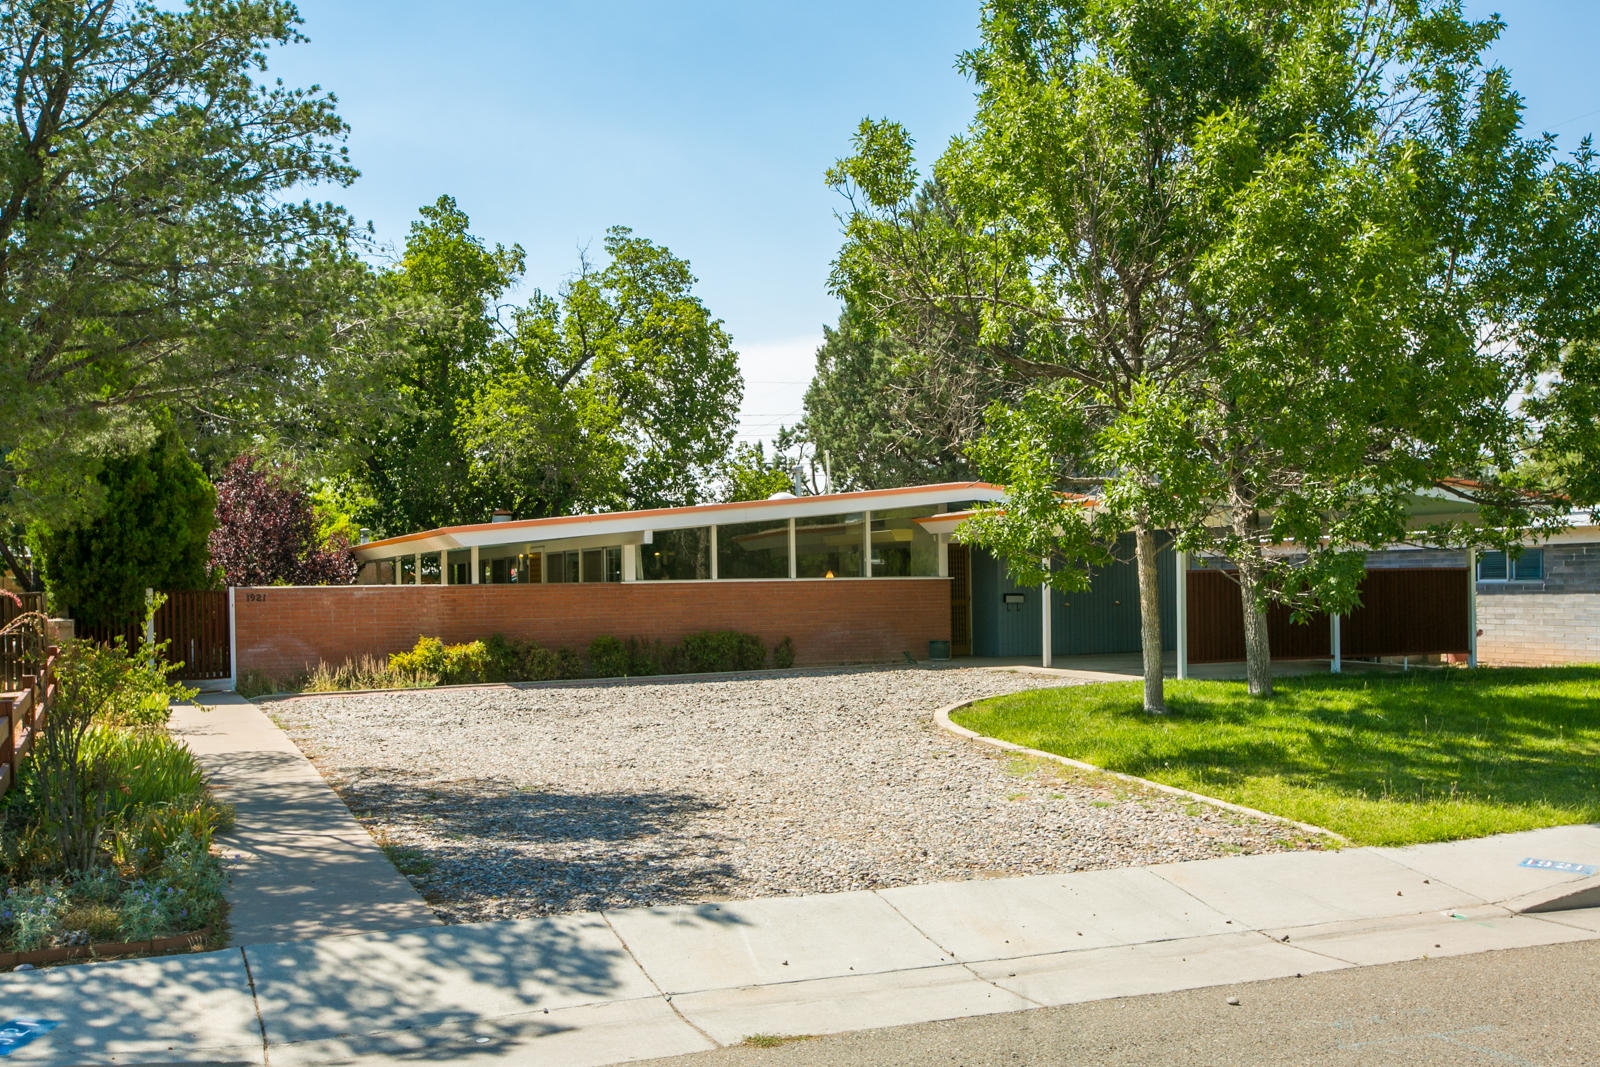 Rare opportunity to own an historically and architecturally significant Mid-Century Modern designed by well known architect, Don Schlegel. Incredible natural light from the wall of windows and total privacy from a well-positioned south facing yard. Move in ready for the purist who wants to retain it's true character. Original features include hanging lamp in the living room, floating fireplace mantel, Chambers built-in cooktop, original wood paneling, floating kitchen cabinets, countertops, bathrooms and more. It even has some of the original paint colors. Light blue ceilings bring the outdoors in and the unique yellow ceiling tray has hidden lighting to feel like sunshine. Systems updates include furnace, HWH, dishwasher, oven, plumbing and soon the electrical panel.